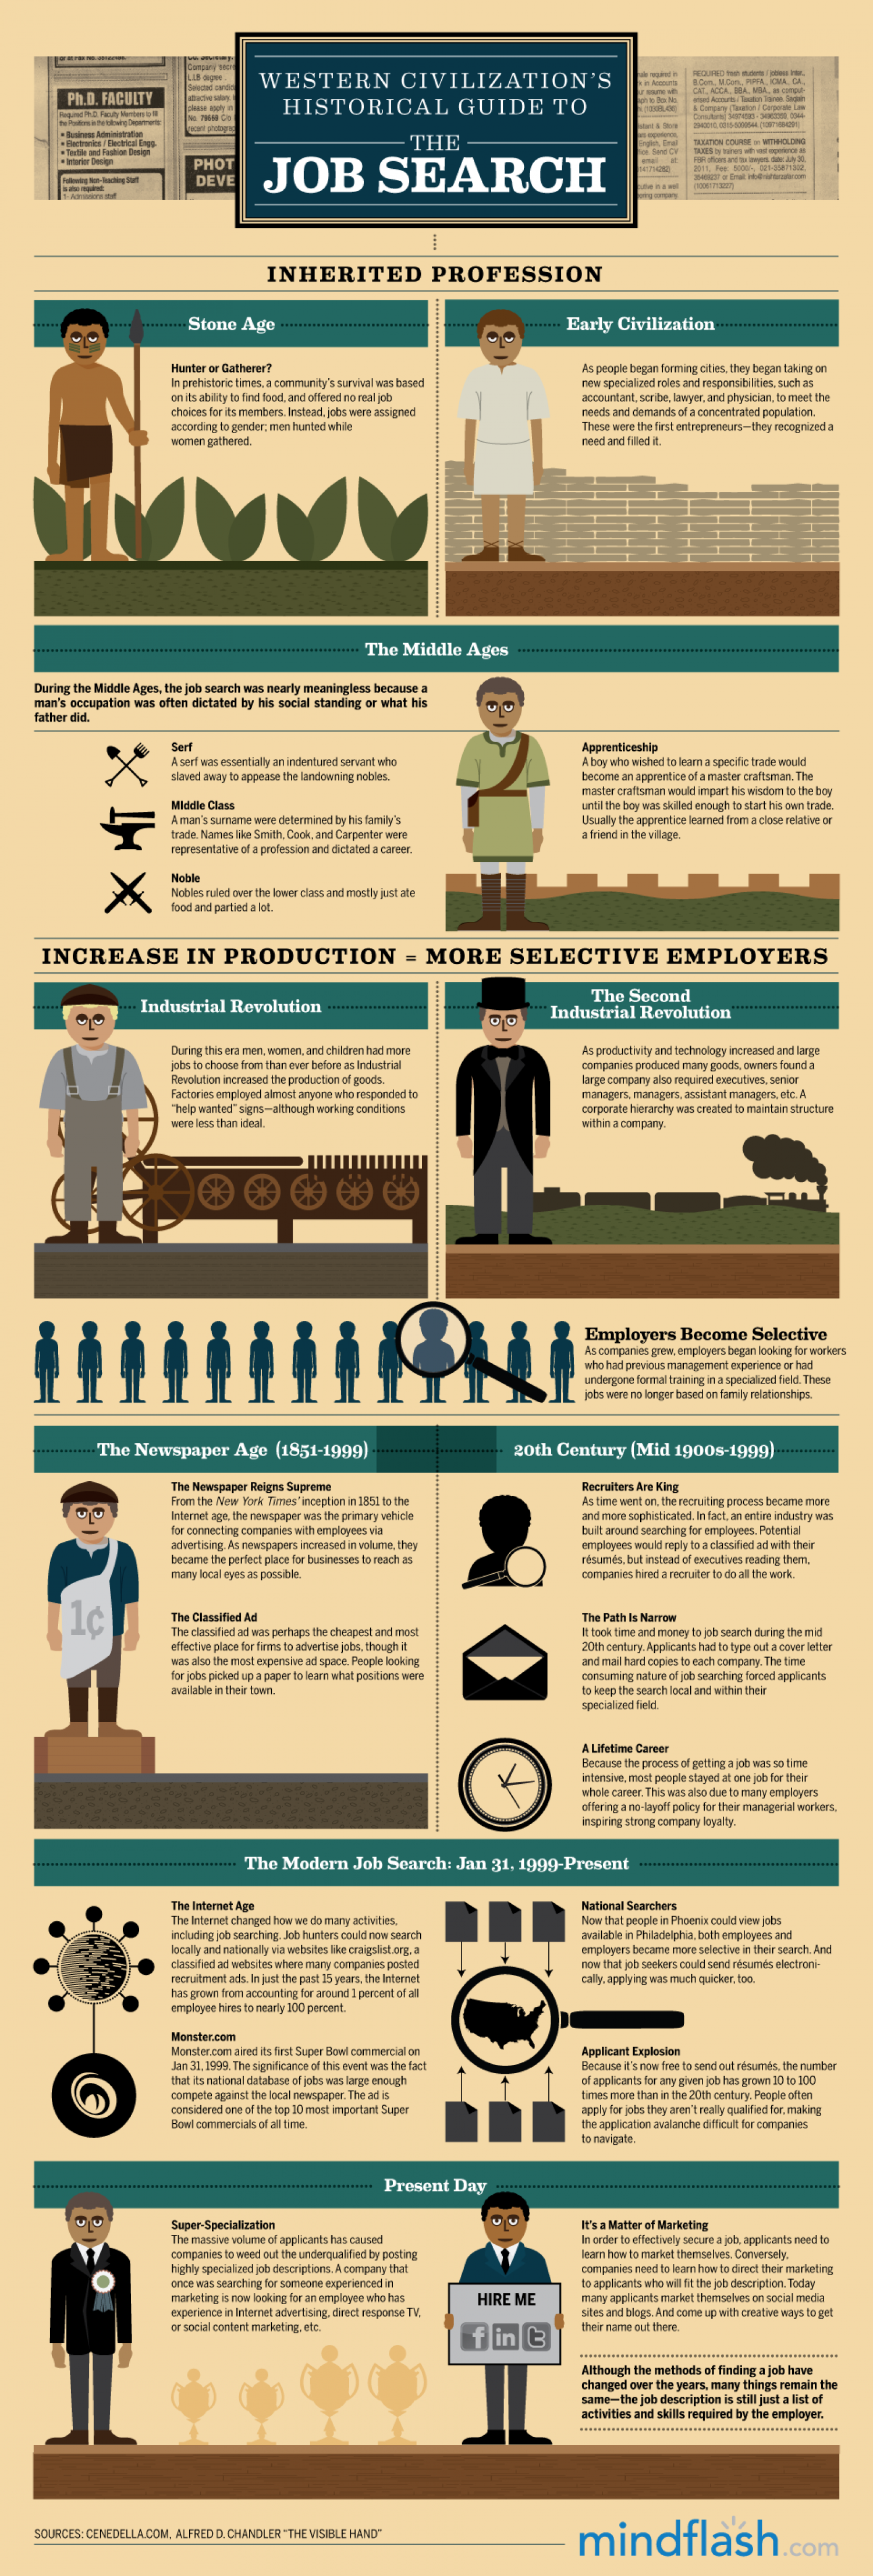 western civilization s historical guide to the job search visual ly western civilization s historical guide to the job search infographic